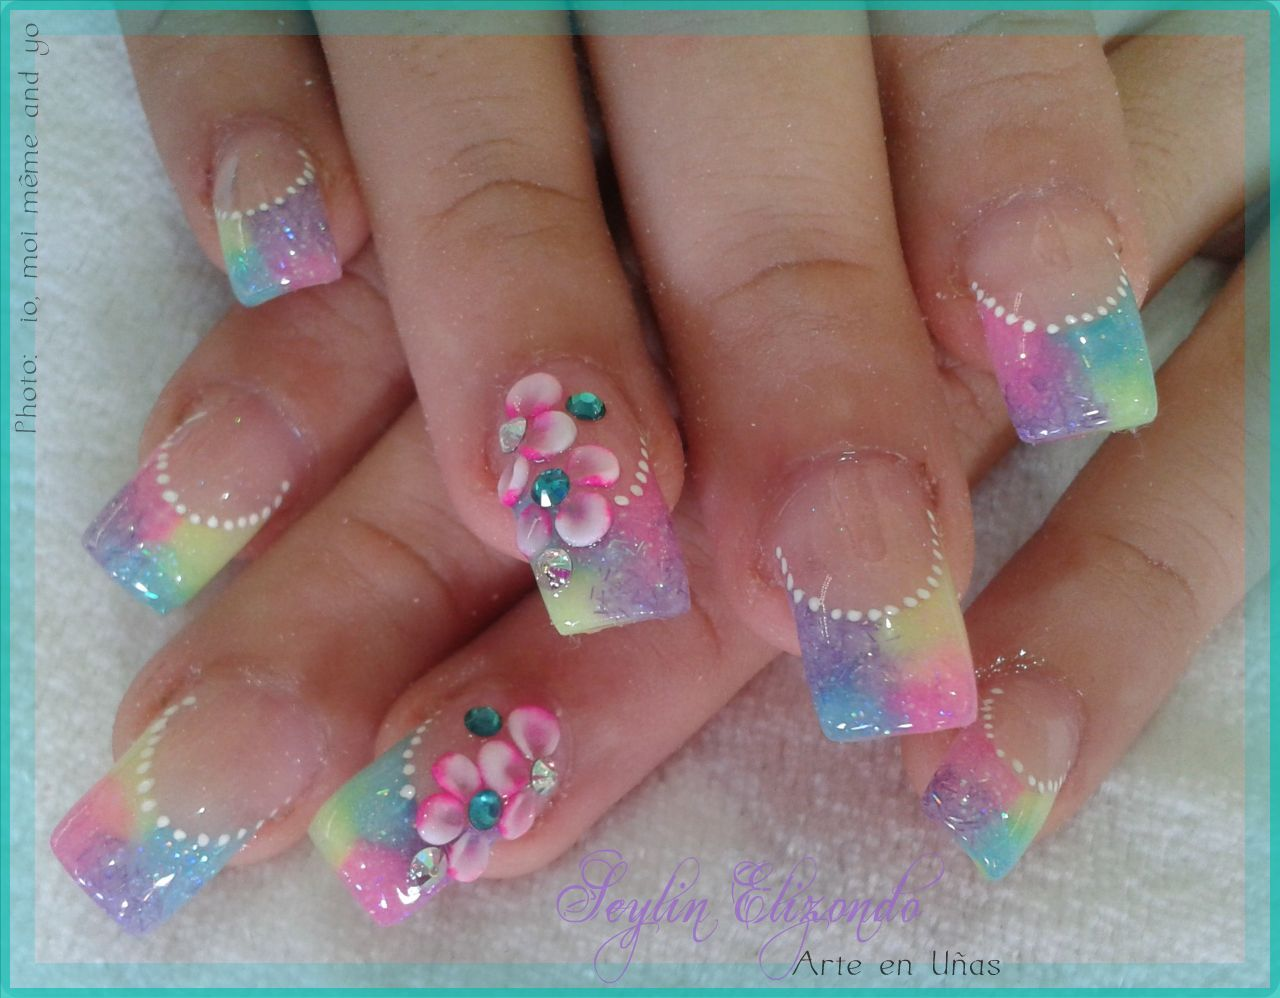 Uñas De Gel Decoradas Con Flores Diseño 7 Gel Acrylic Sculptured Nails En 2019 Uñas